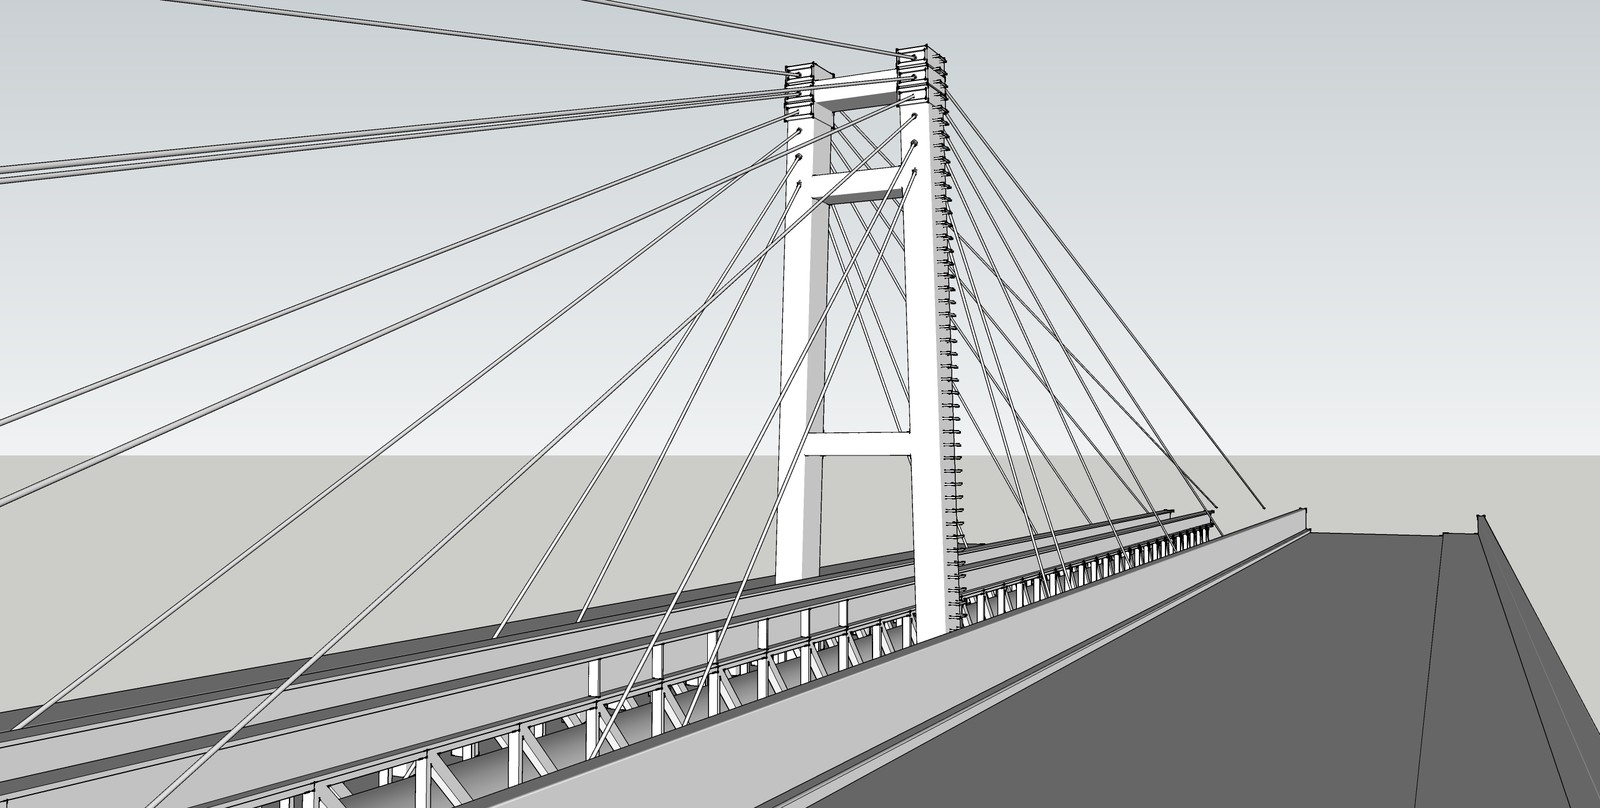 Raw model in Sketchup